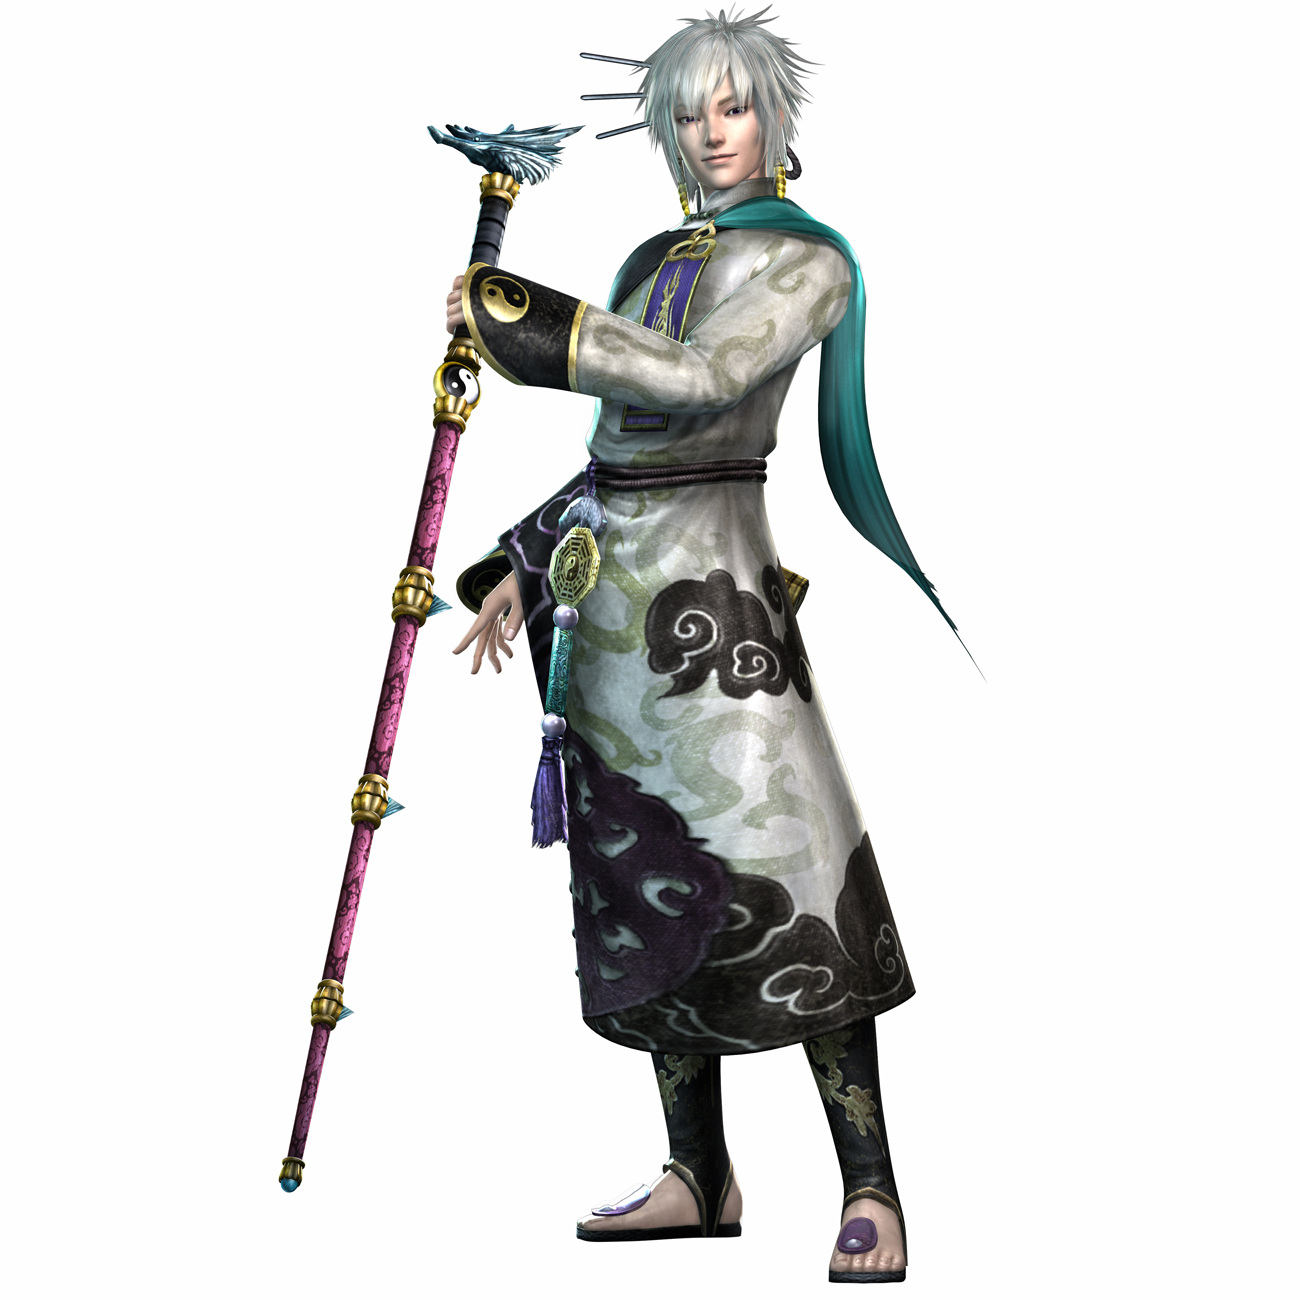 Warriors Orochi 3 Ultimate Mystic Weapons Difficulty: FANDOM Powered By Wikia